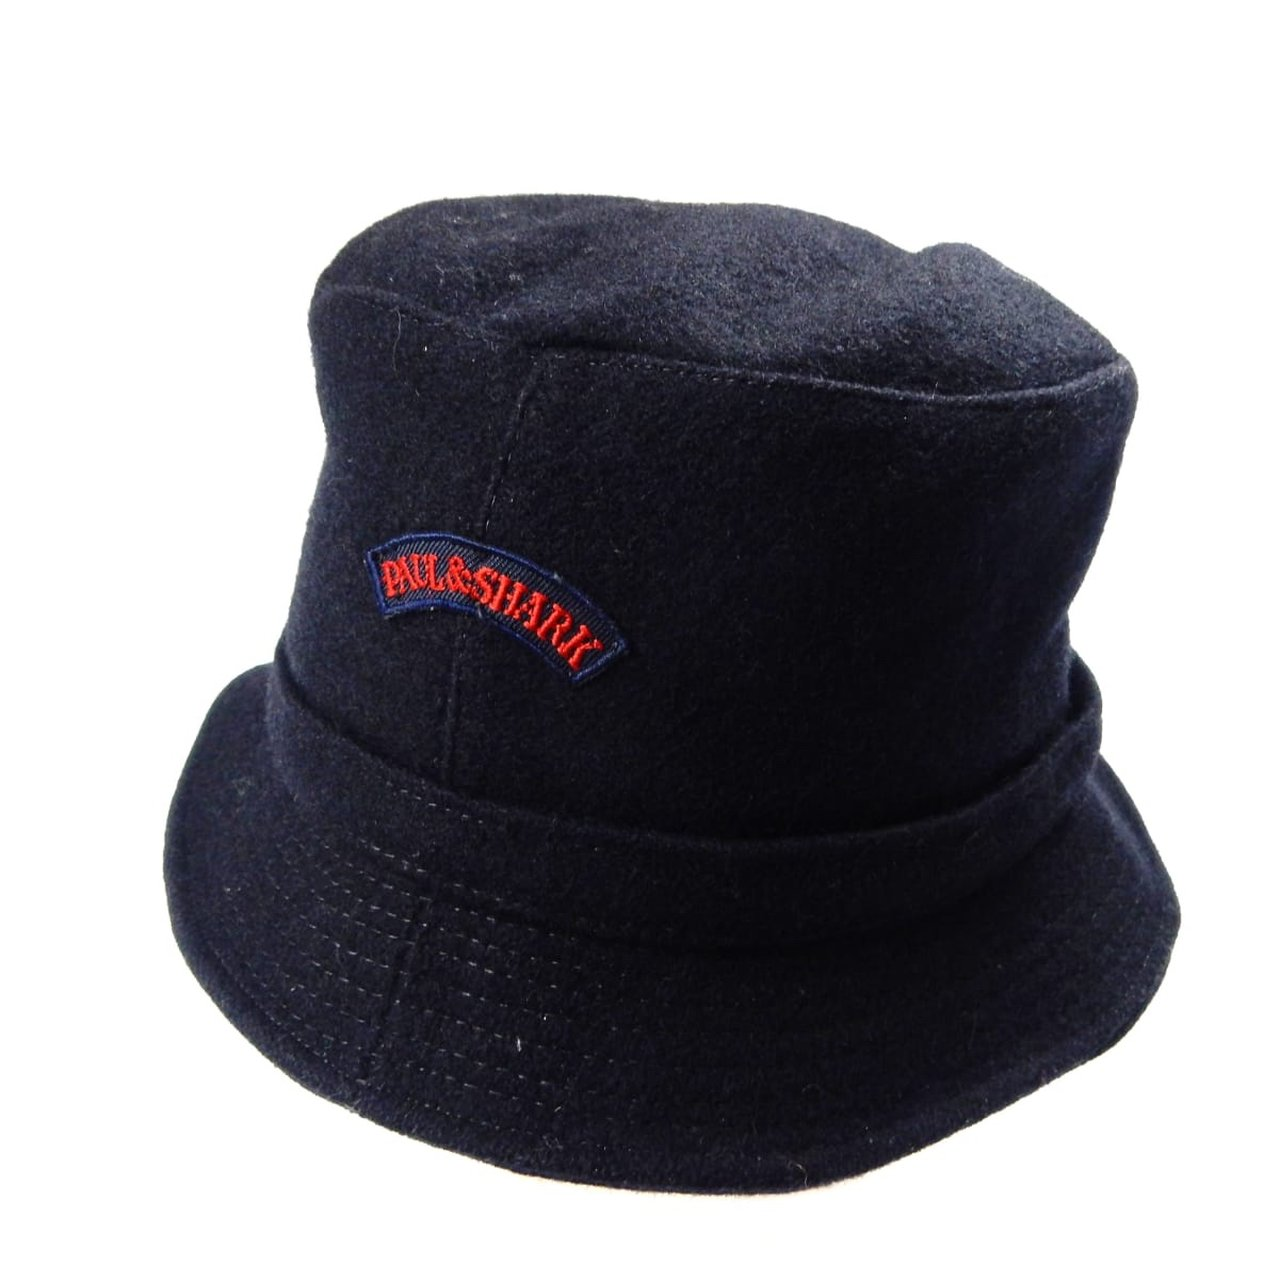 Paul   Shark bucket hat coming in a thick wool material 30eb9999abc